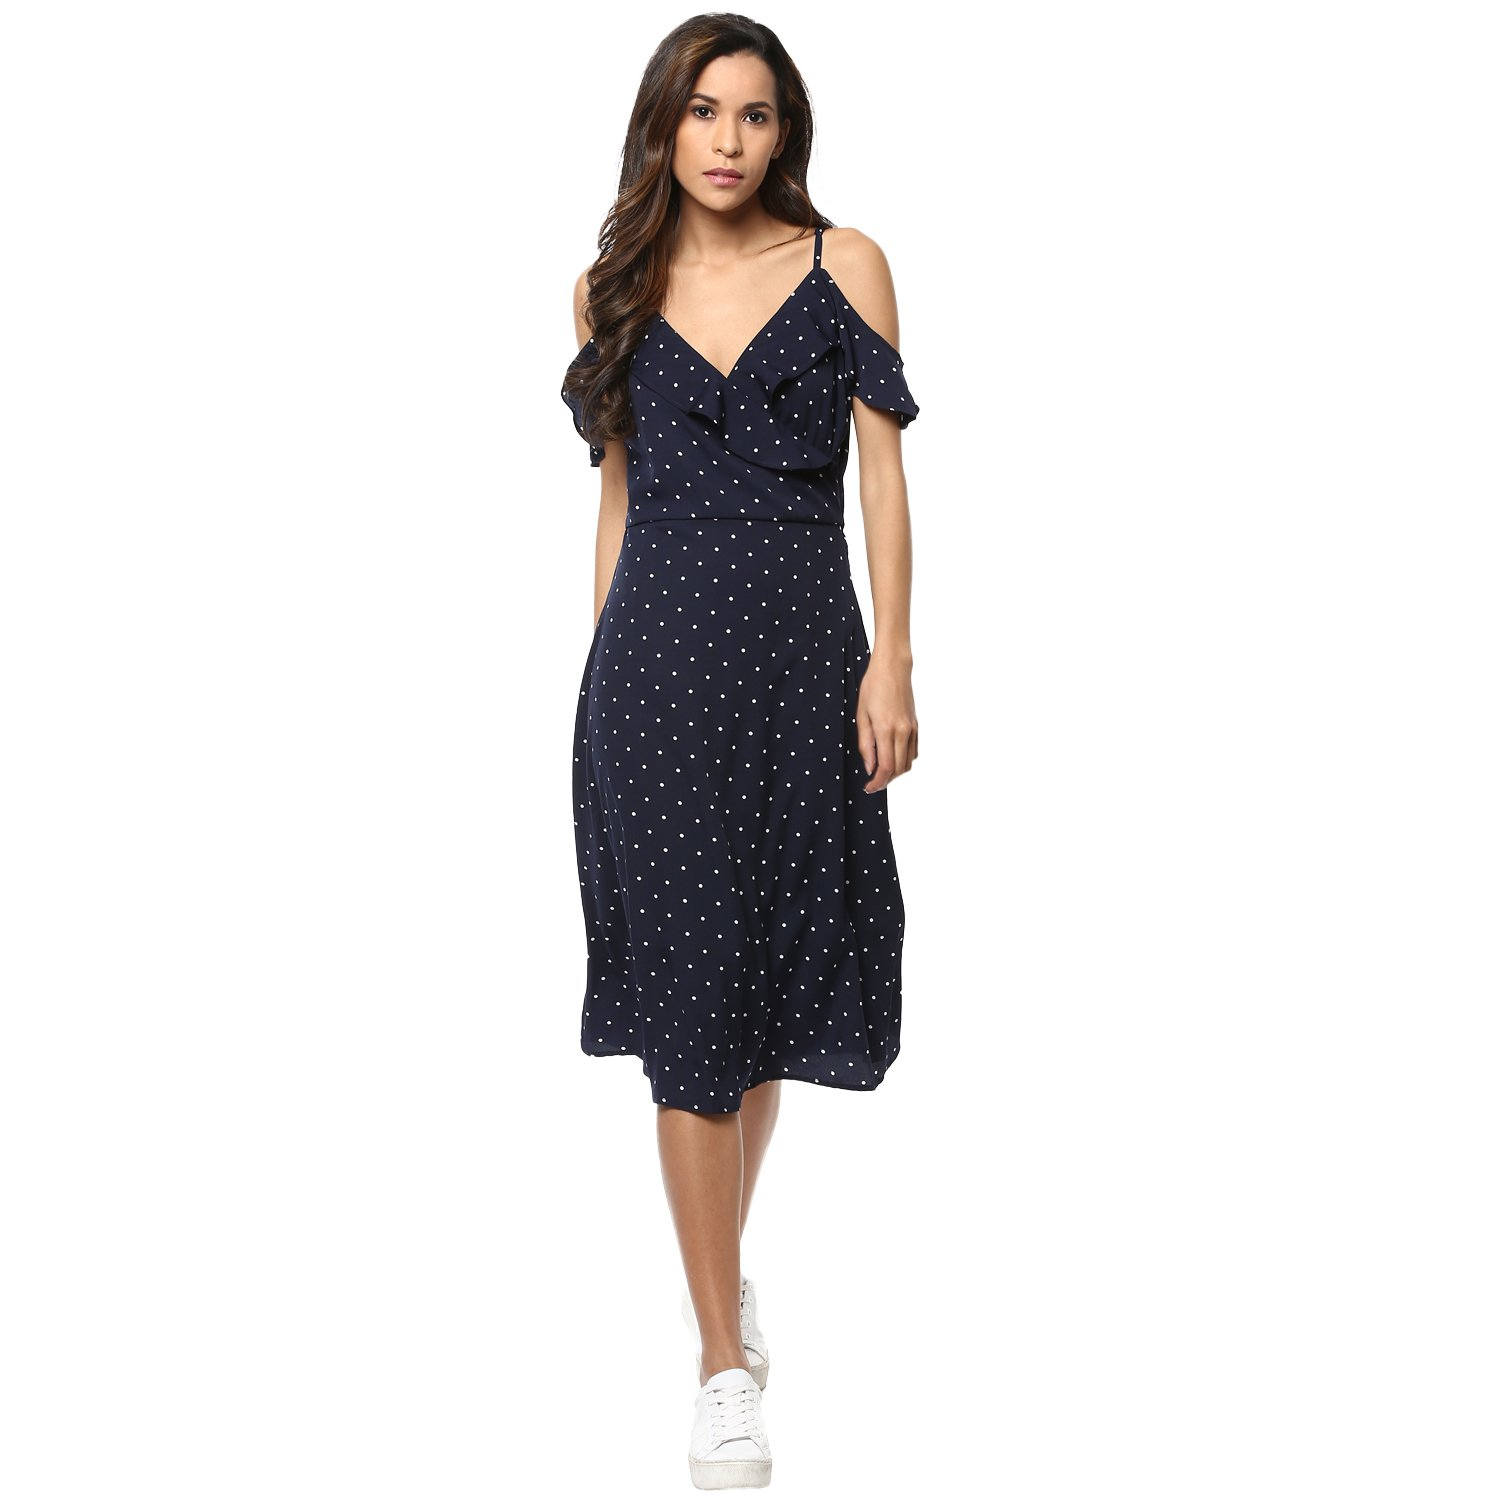 Harpa Strap Shoulder Dress (GR5164-NAVY)